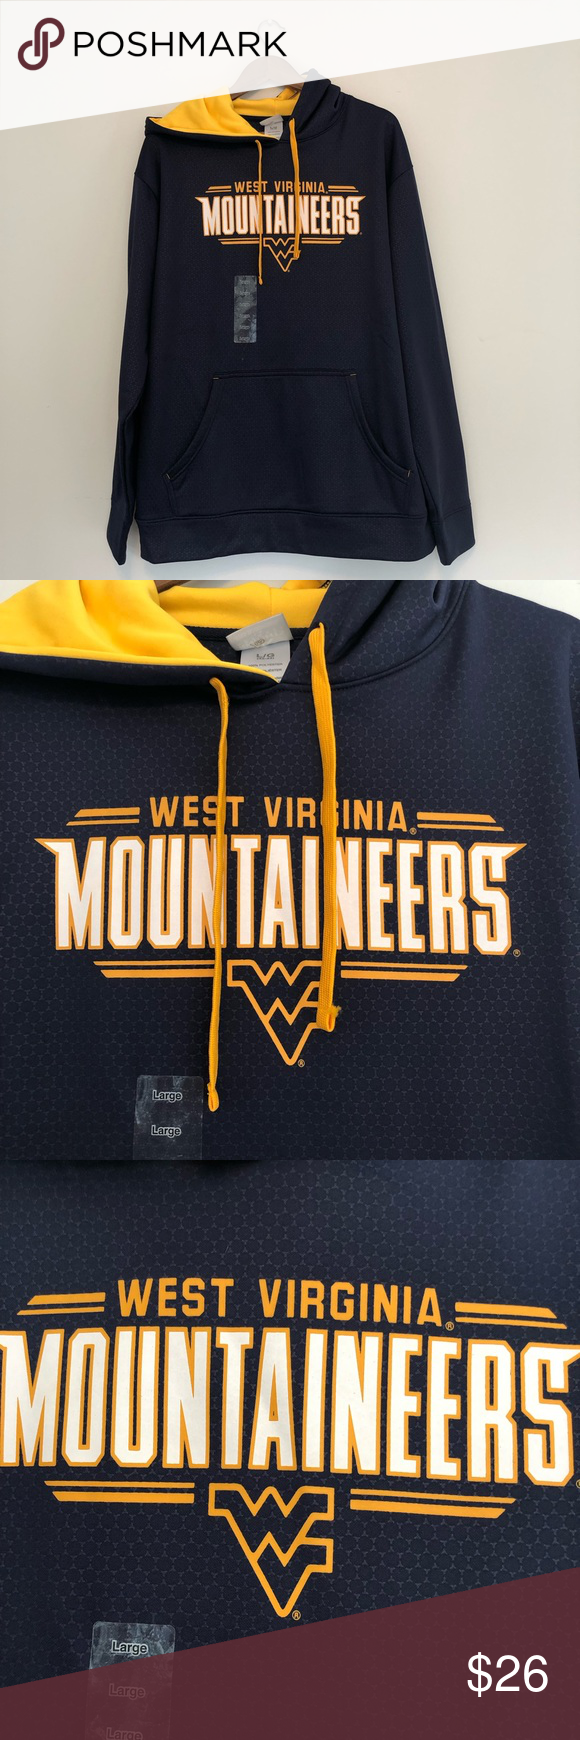 Men's Large WVU Mountaineers Sweatshirt Navy Gold Men's WVU Sweatshirt NWT. Size large. No defects & never worn. Knights Apparel Shirts Sweatshirts & Hoodies #wvumountaineers